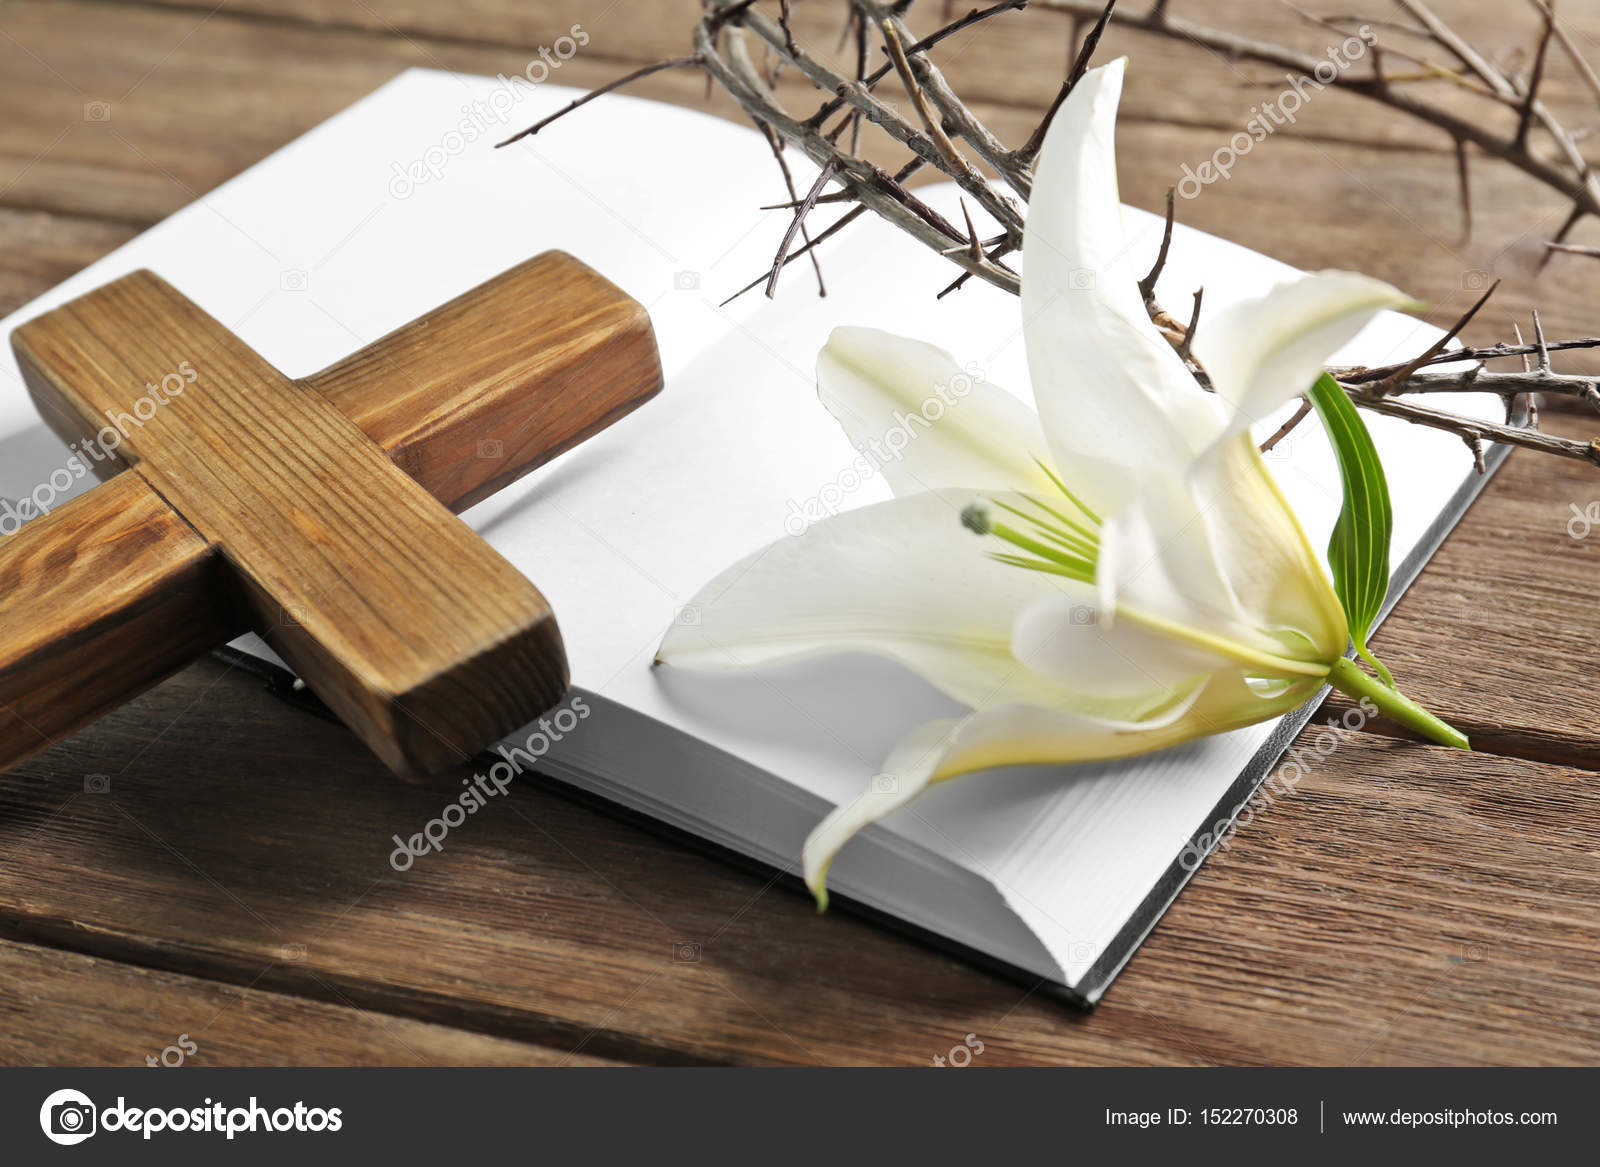 Crown Of Thorns Holy Bible Wooden Cross And White Lily On Table